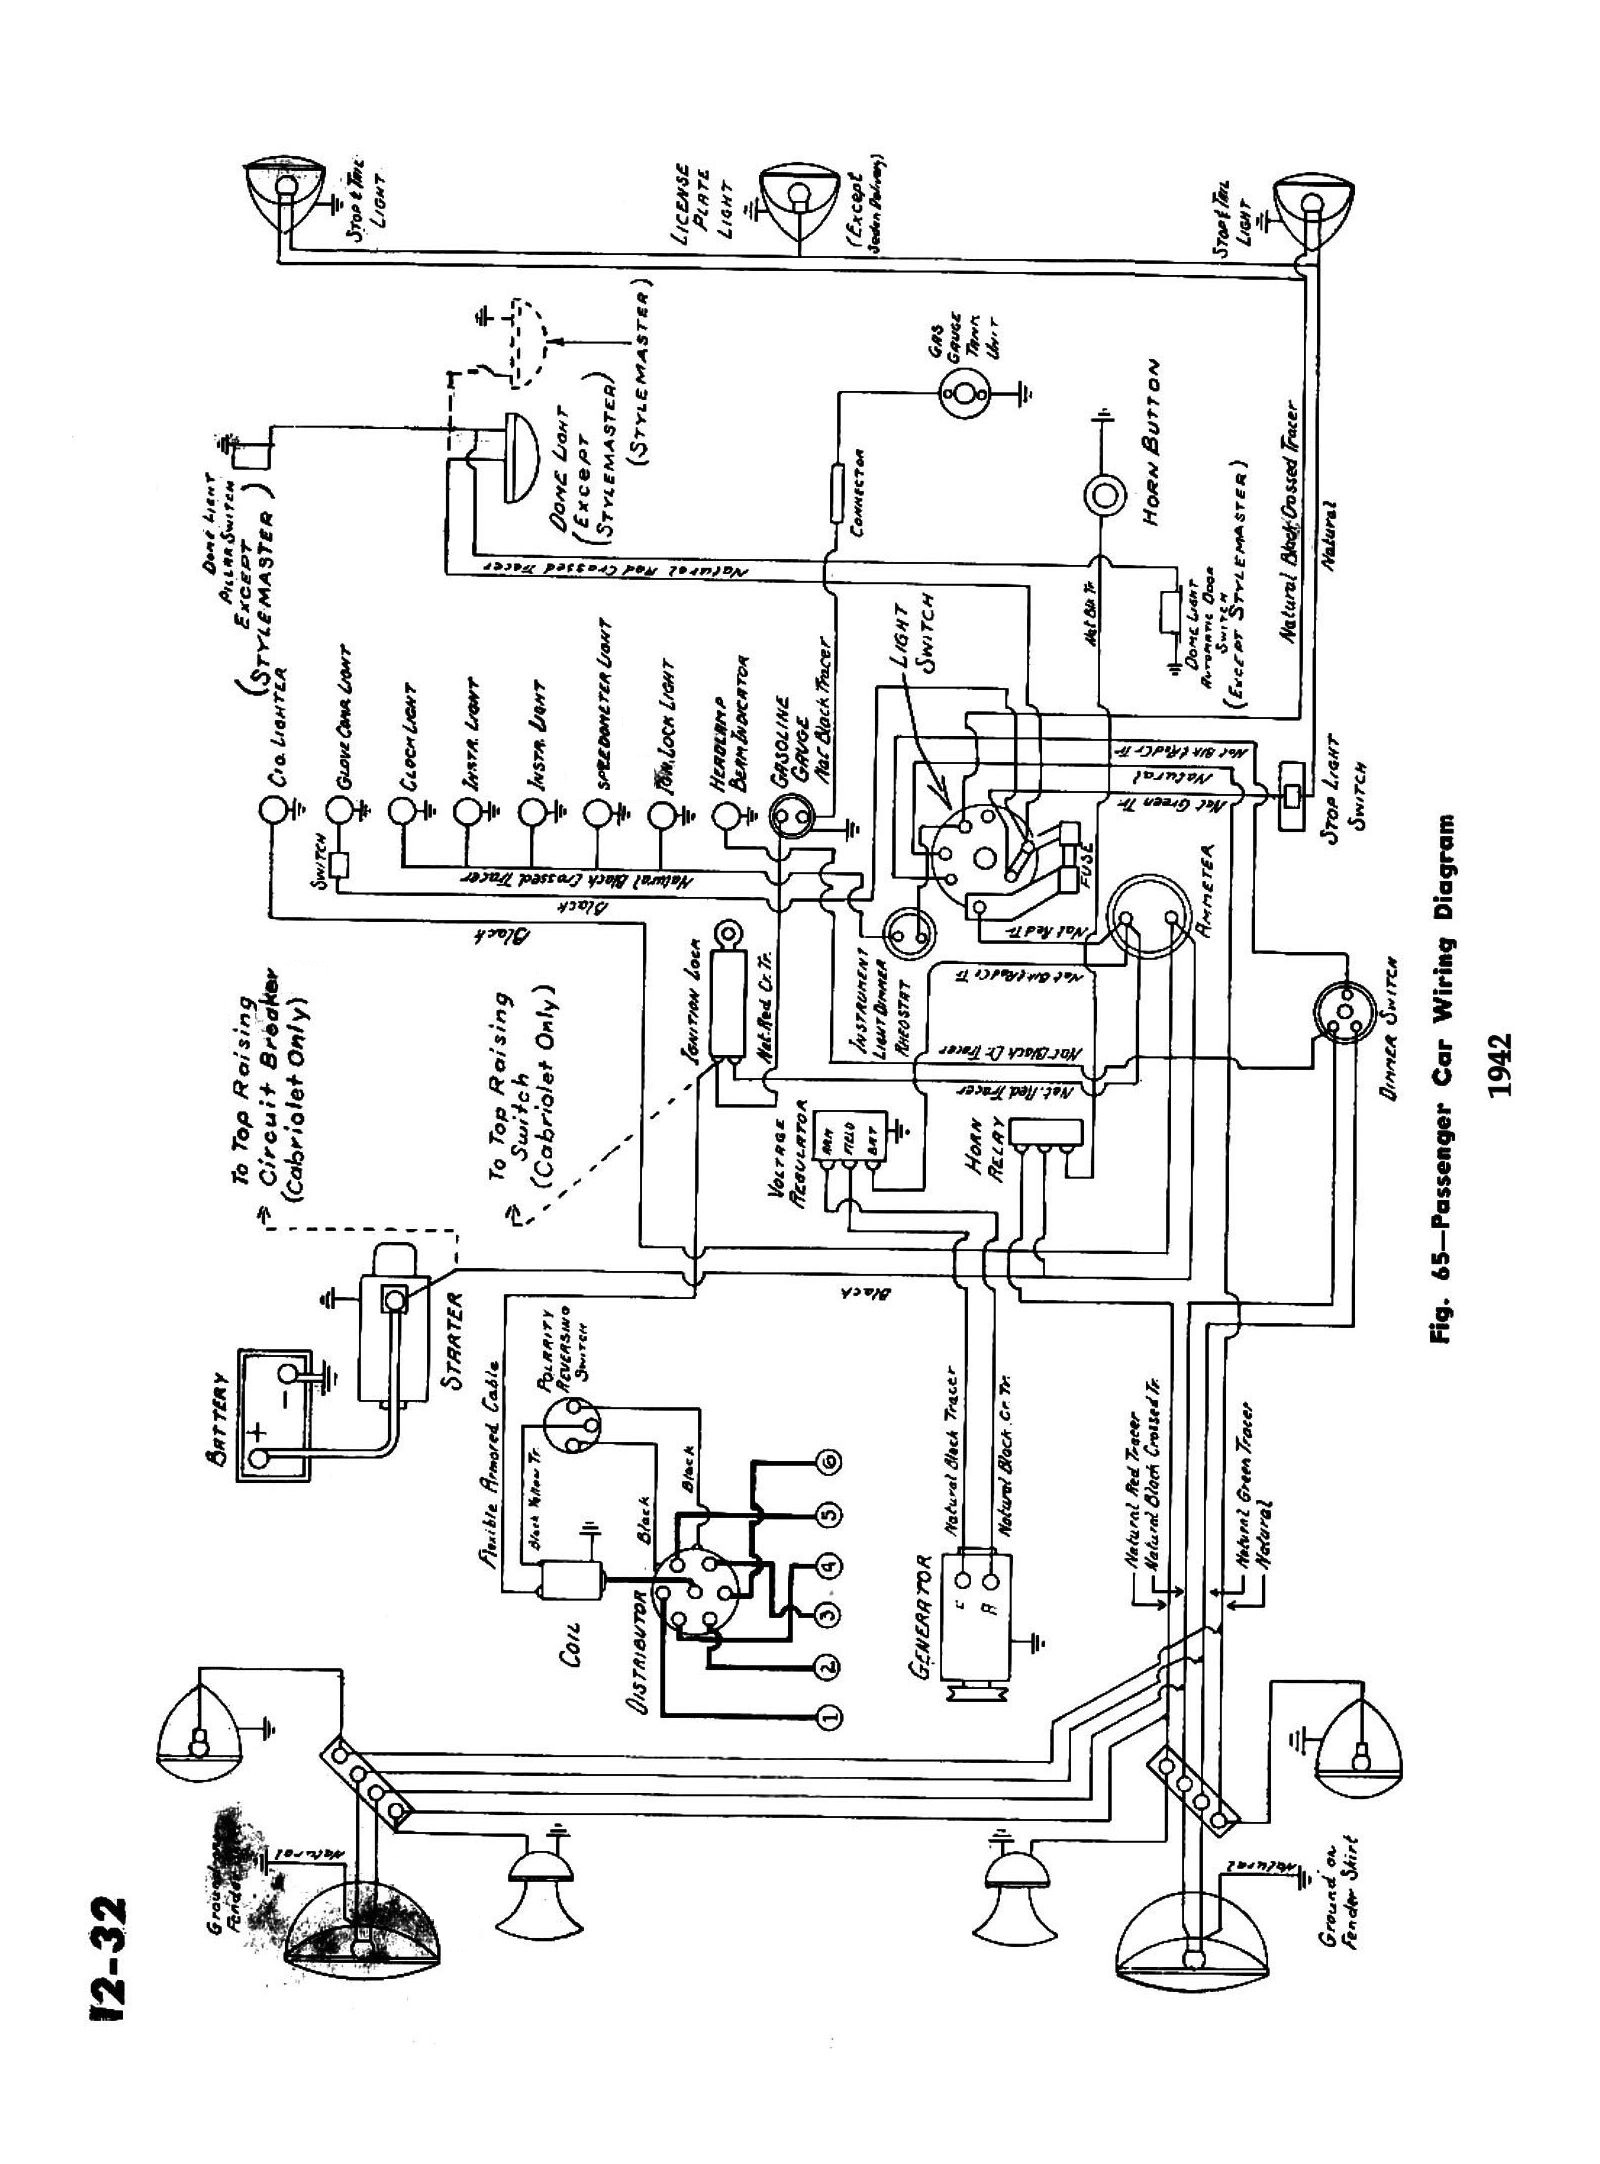 1941 Plymouth Wiring Diagrams Schematics Chevy 350 Harness 1942 1946 1947 1948 Car Color Diagram Detailed Rh Lelandlutheran Com Starter 1939 Positive Ground